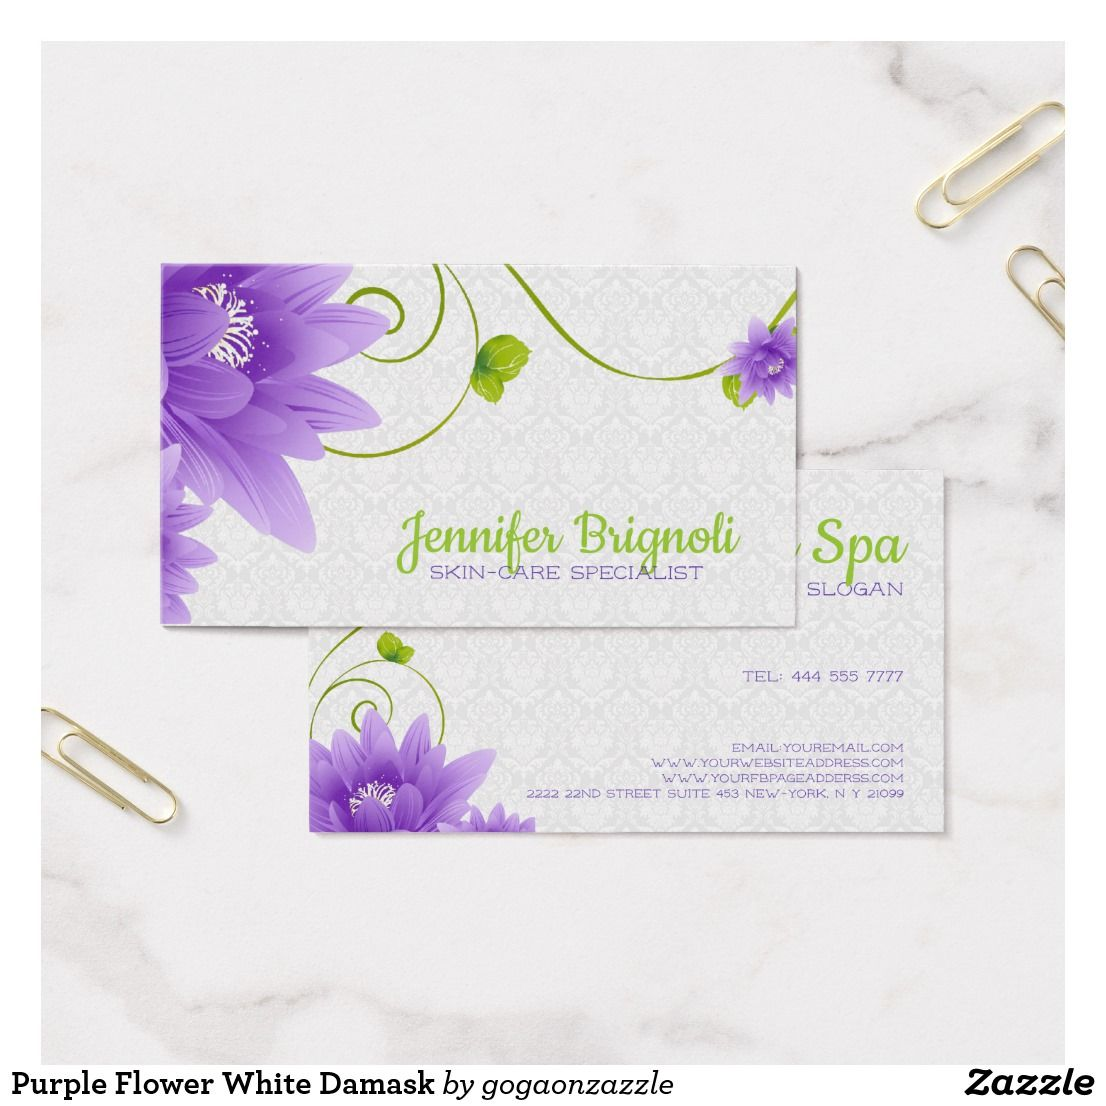 Purple flower white damask business card business pinterest purple flower white damask business card reheart Gallery